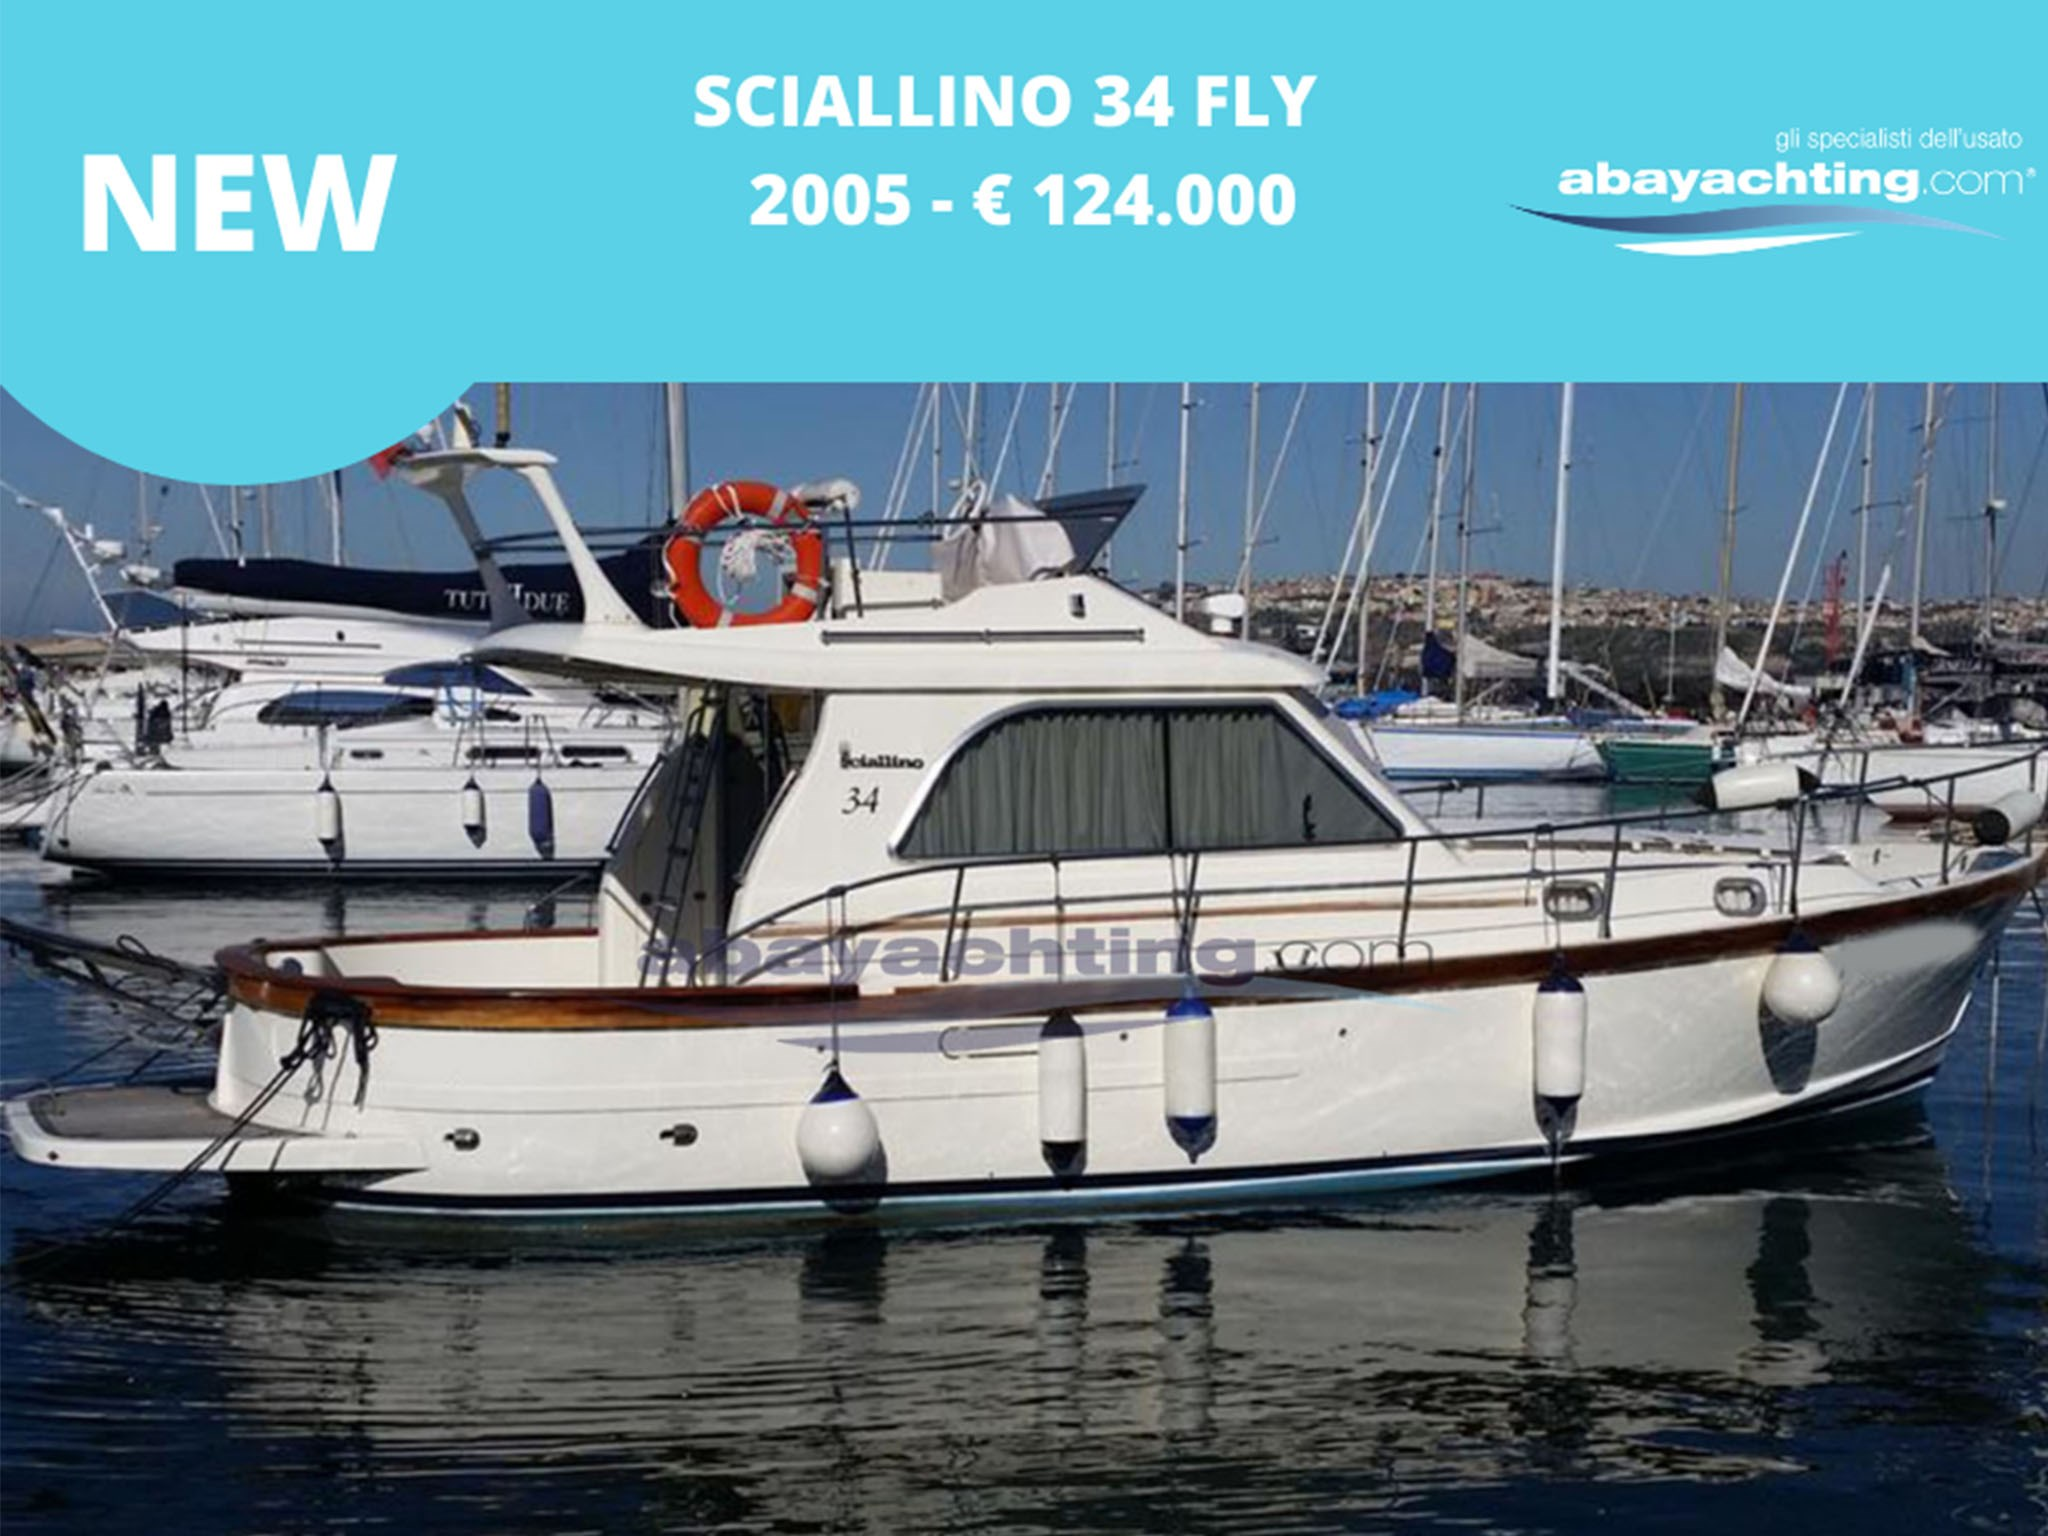 New arrival Sciallino 34 Fly